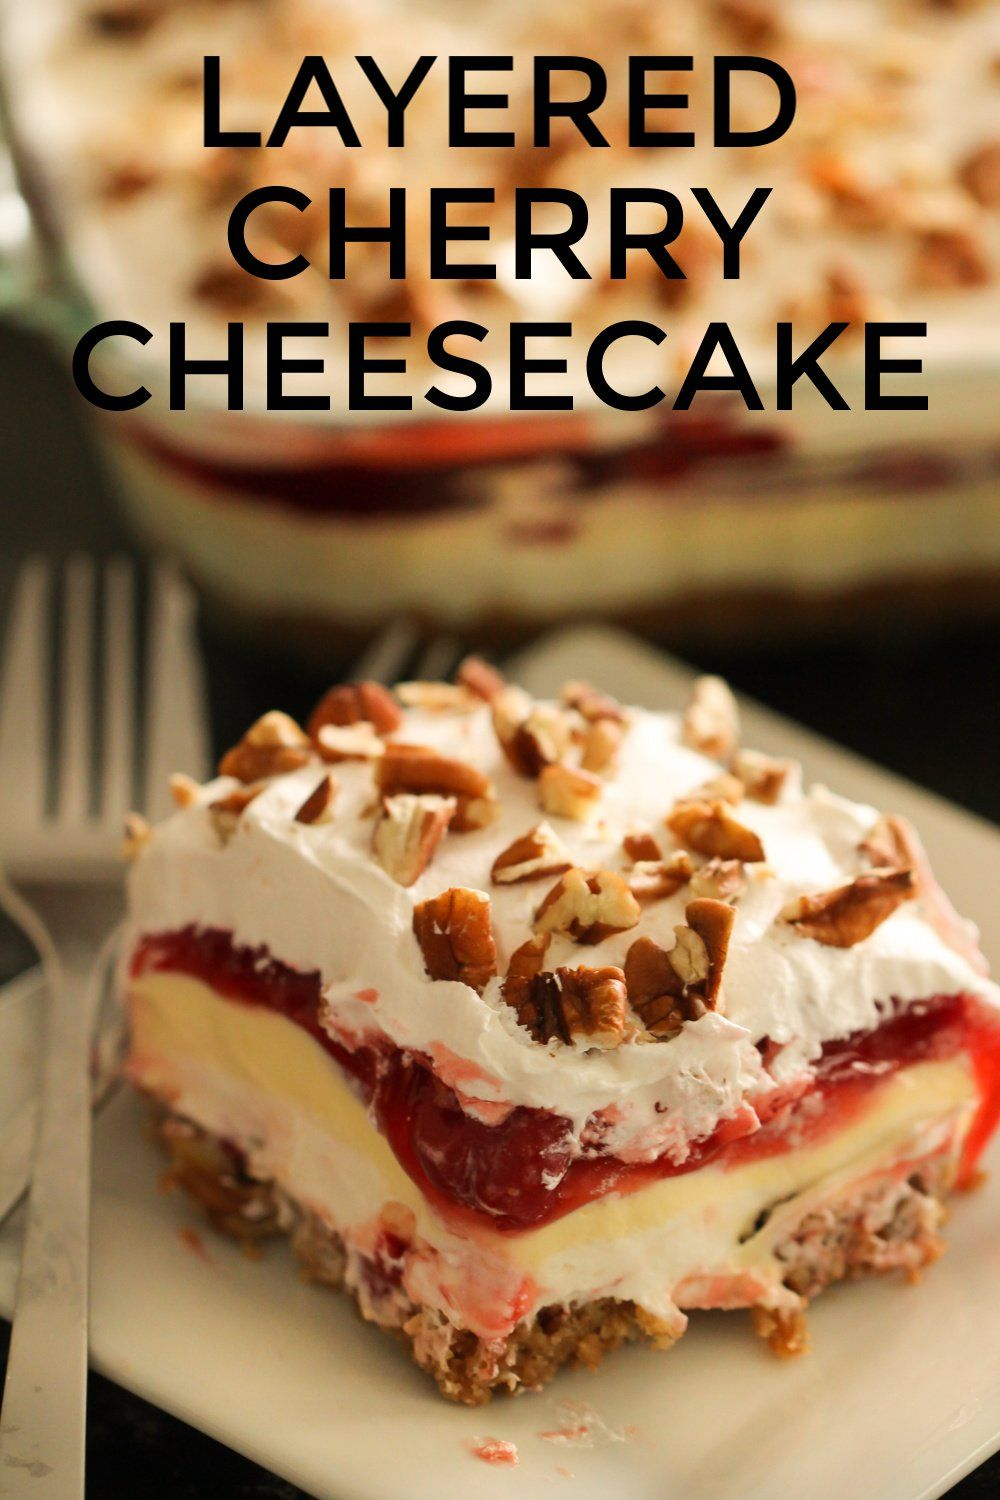 Layered Cherry Cheesecake from SixSistersStuff.com